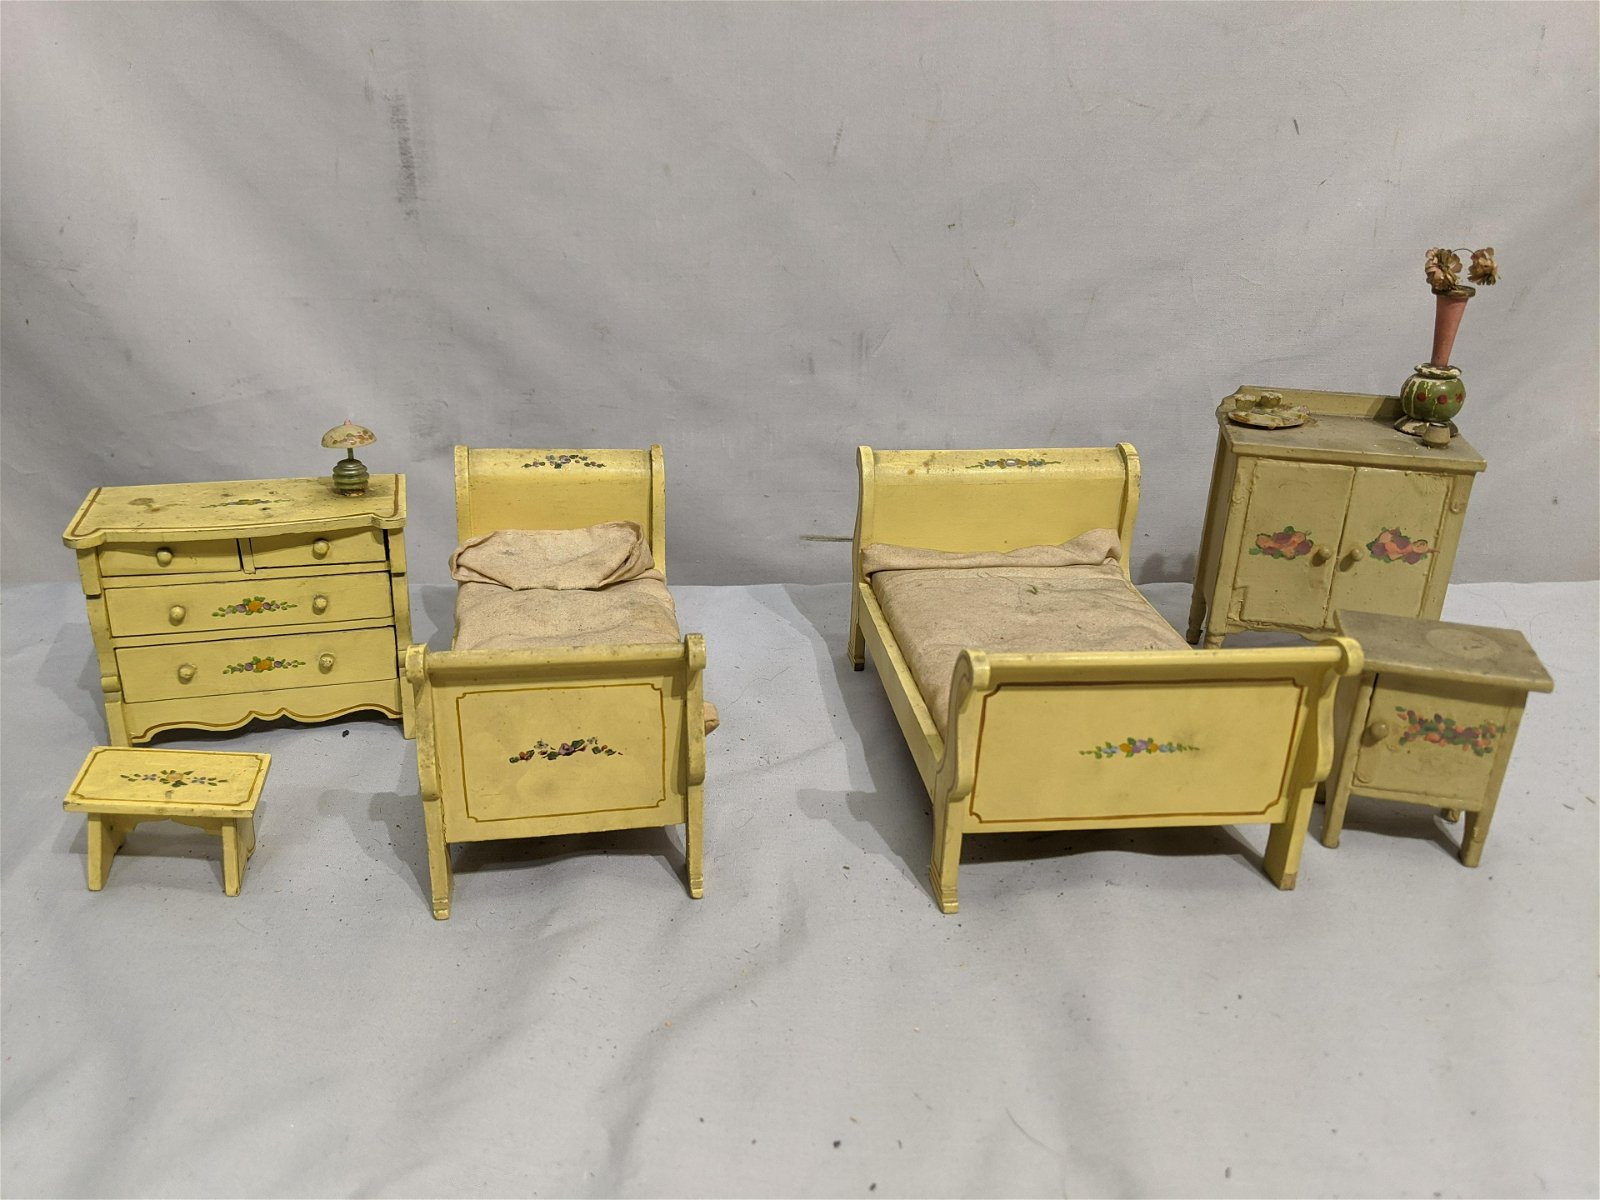 Antique Painted Wood Doll House Furniture 6 Pieces